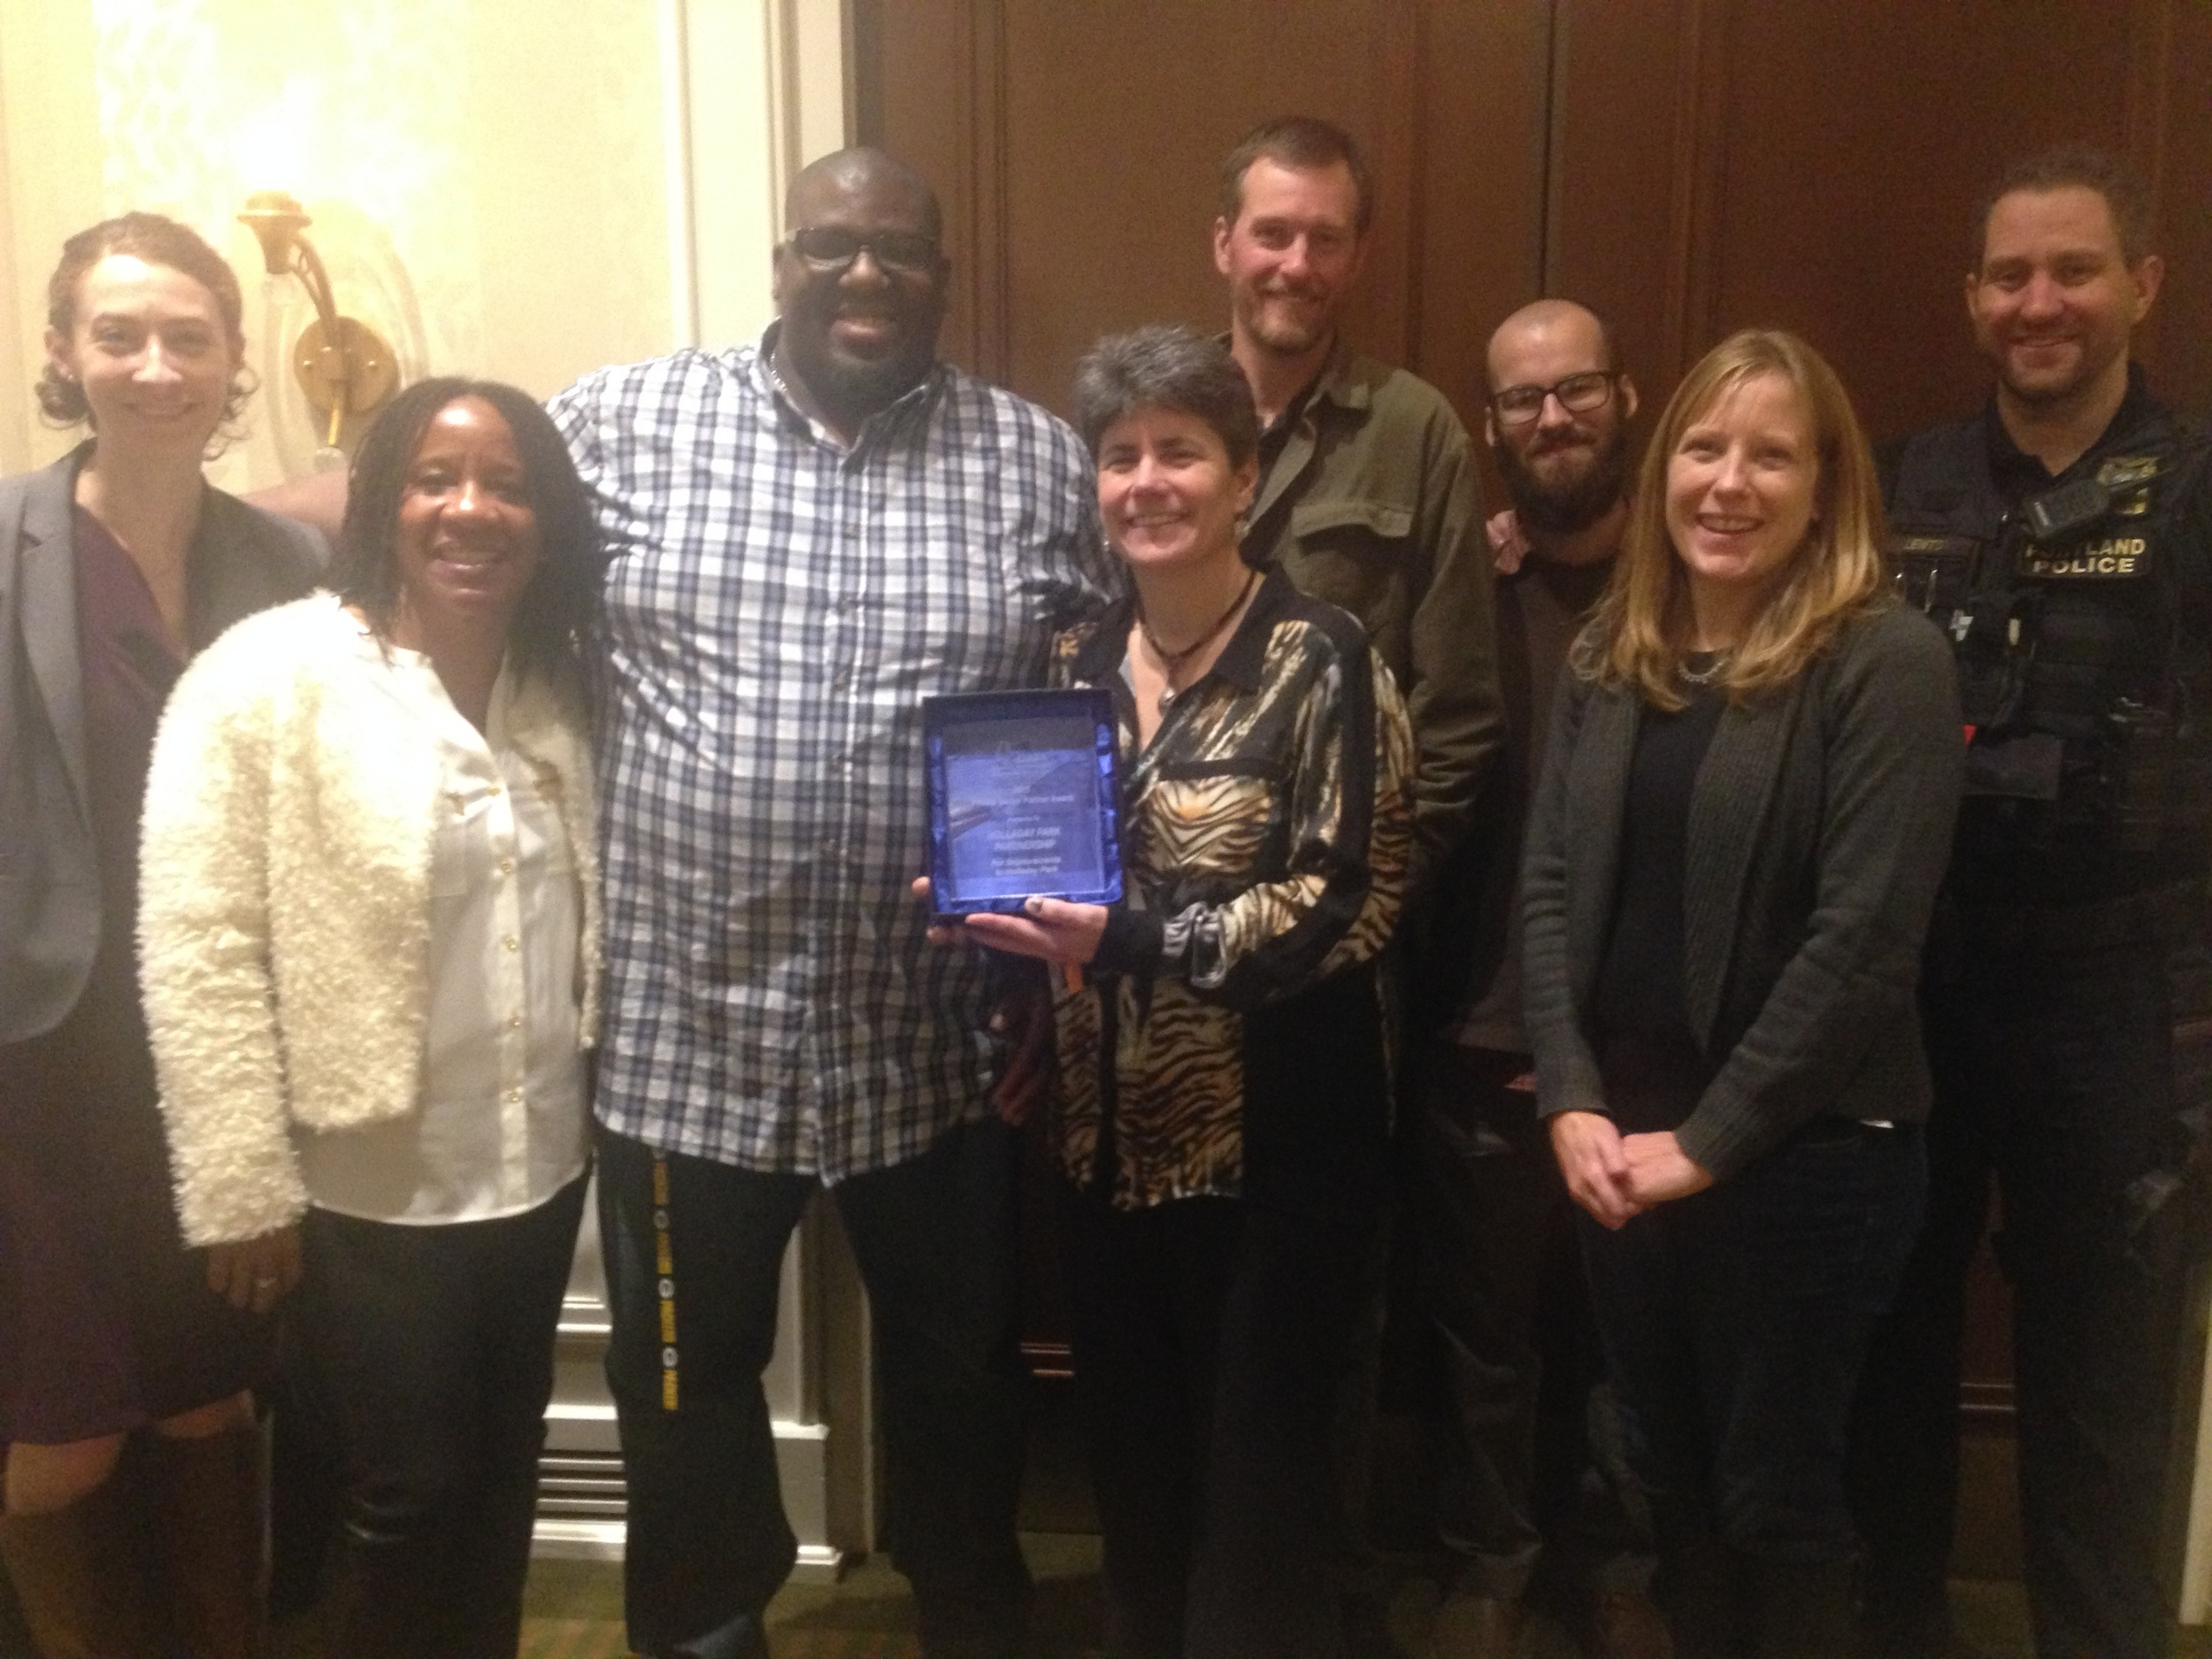 Representatives of the Holladay Park Partnership accept their award from the Oregon Recreation & Park Association. From left: Vivian Godsey (D.A., formerly assigned to the Lloyd District), Mary Tompkins, Anthony Williams (Park Ranger for Holladay Park), Sue Glenn (Parks and Recreation), Mike Grosso (Parks and Recreation), Jordan Rhodes (Event Assistant for Holladay Park), Alicia Hammock (Parks and Recreation) and Portland Police Officer Ryan Lewton.